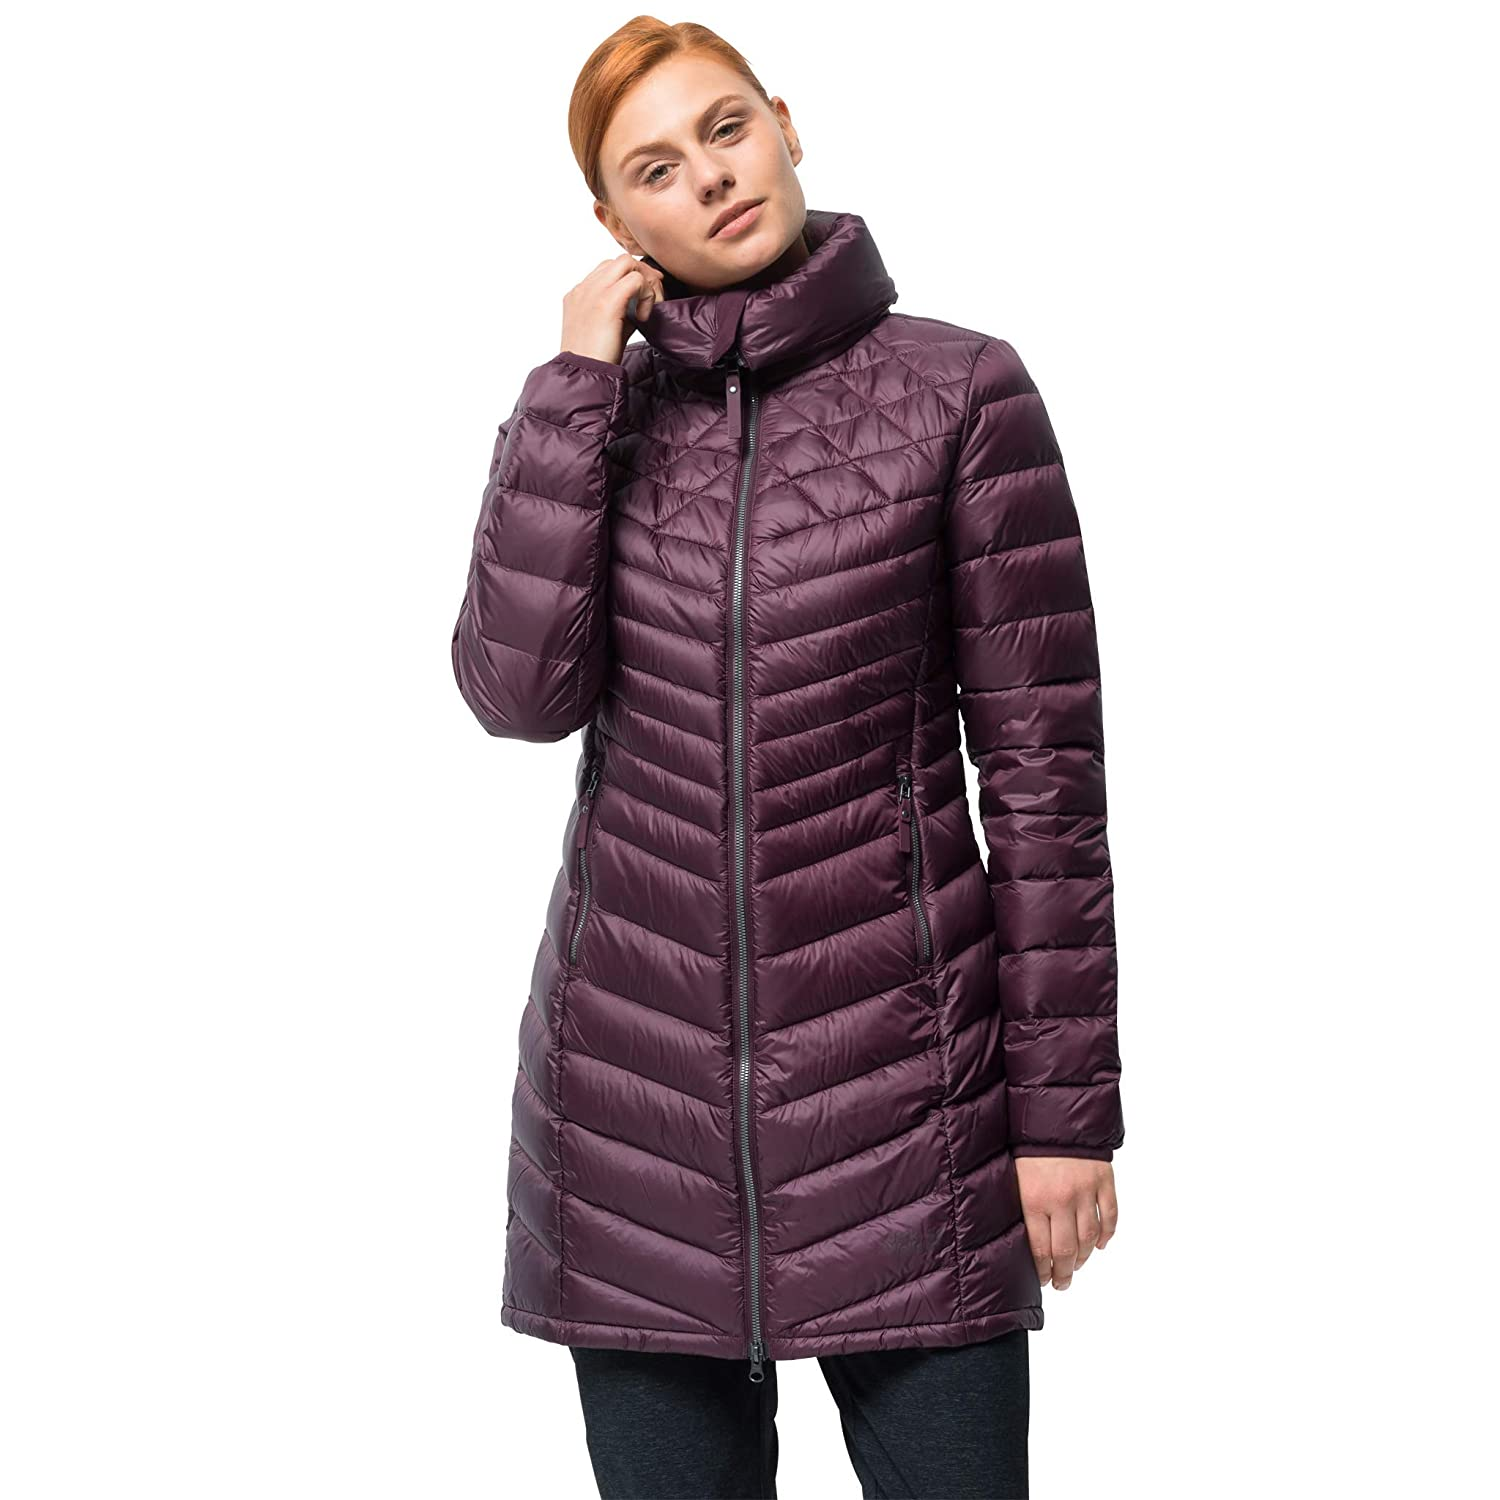 Burgundy Jack Wolfskin Women's Richmond Down Puffer Long Jacket